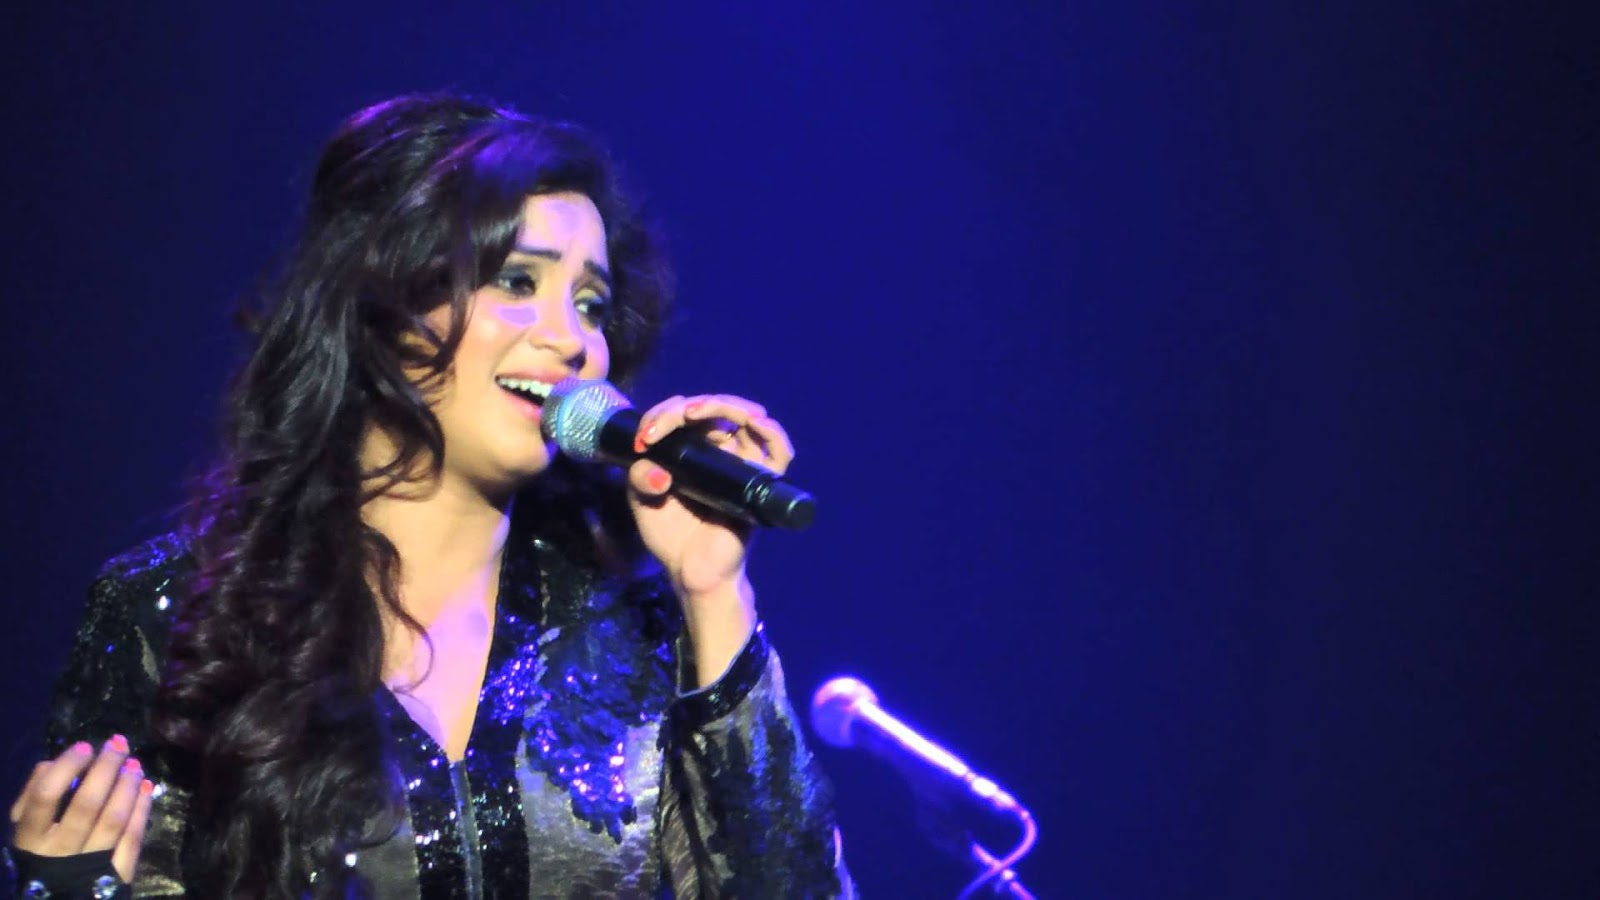 shreya ghoshal Singer shreya ghoshal tweeted 5 days ago about being super-excited and nervous don't know if i'm super nervous or super excited never felt like this b4 whatever i am up.